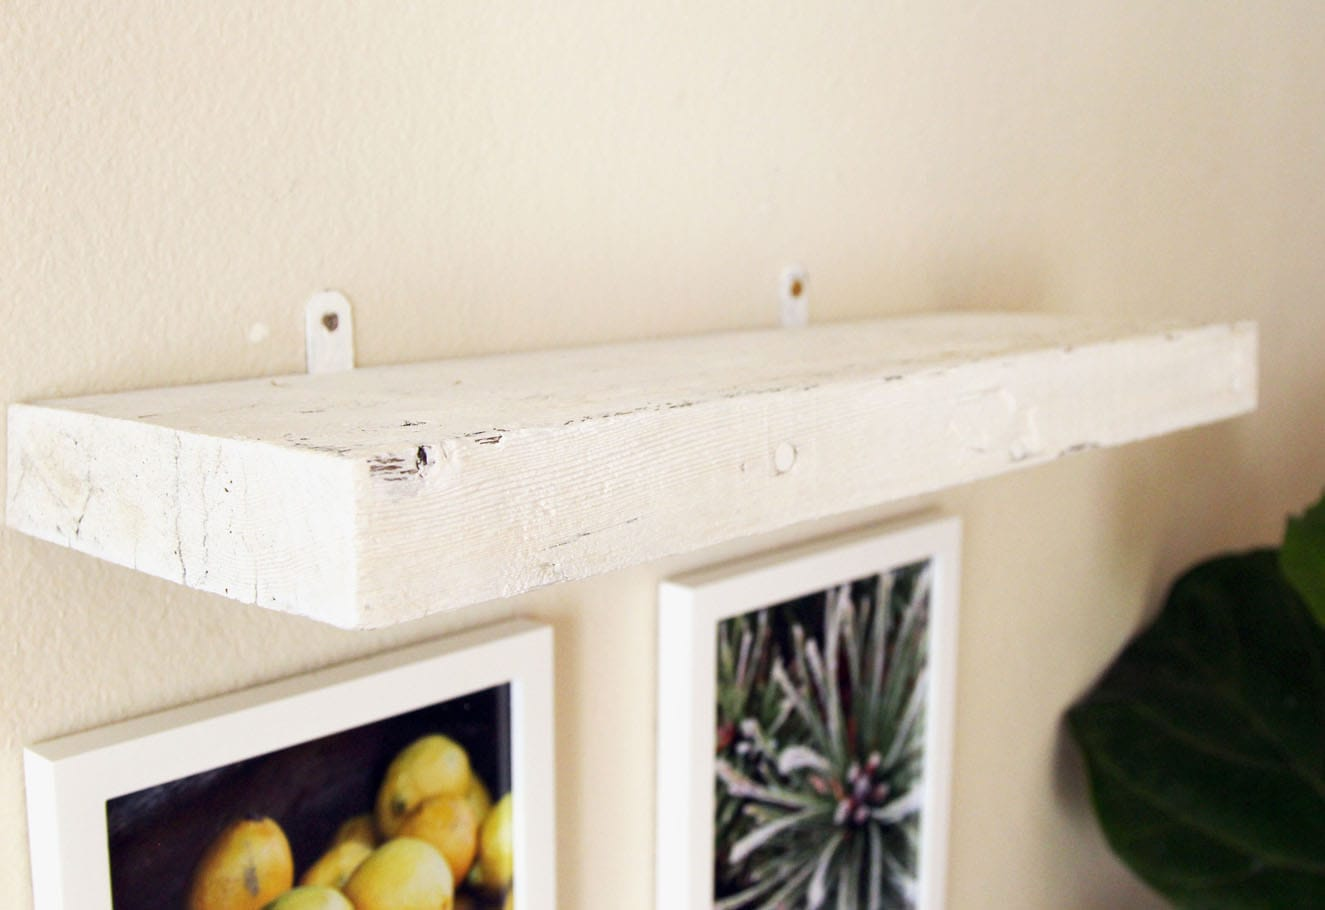 easy faux diy floating shelves minutes piece rainbow wall shelf apieceofrainbow with brackets screw the and onto because there are only tiny bits showing very each hide them